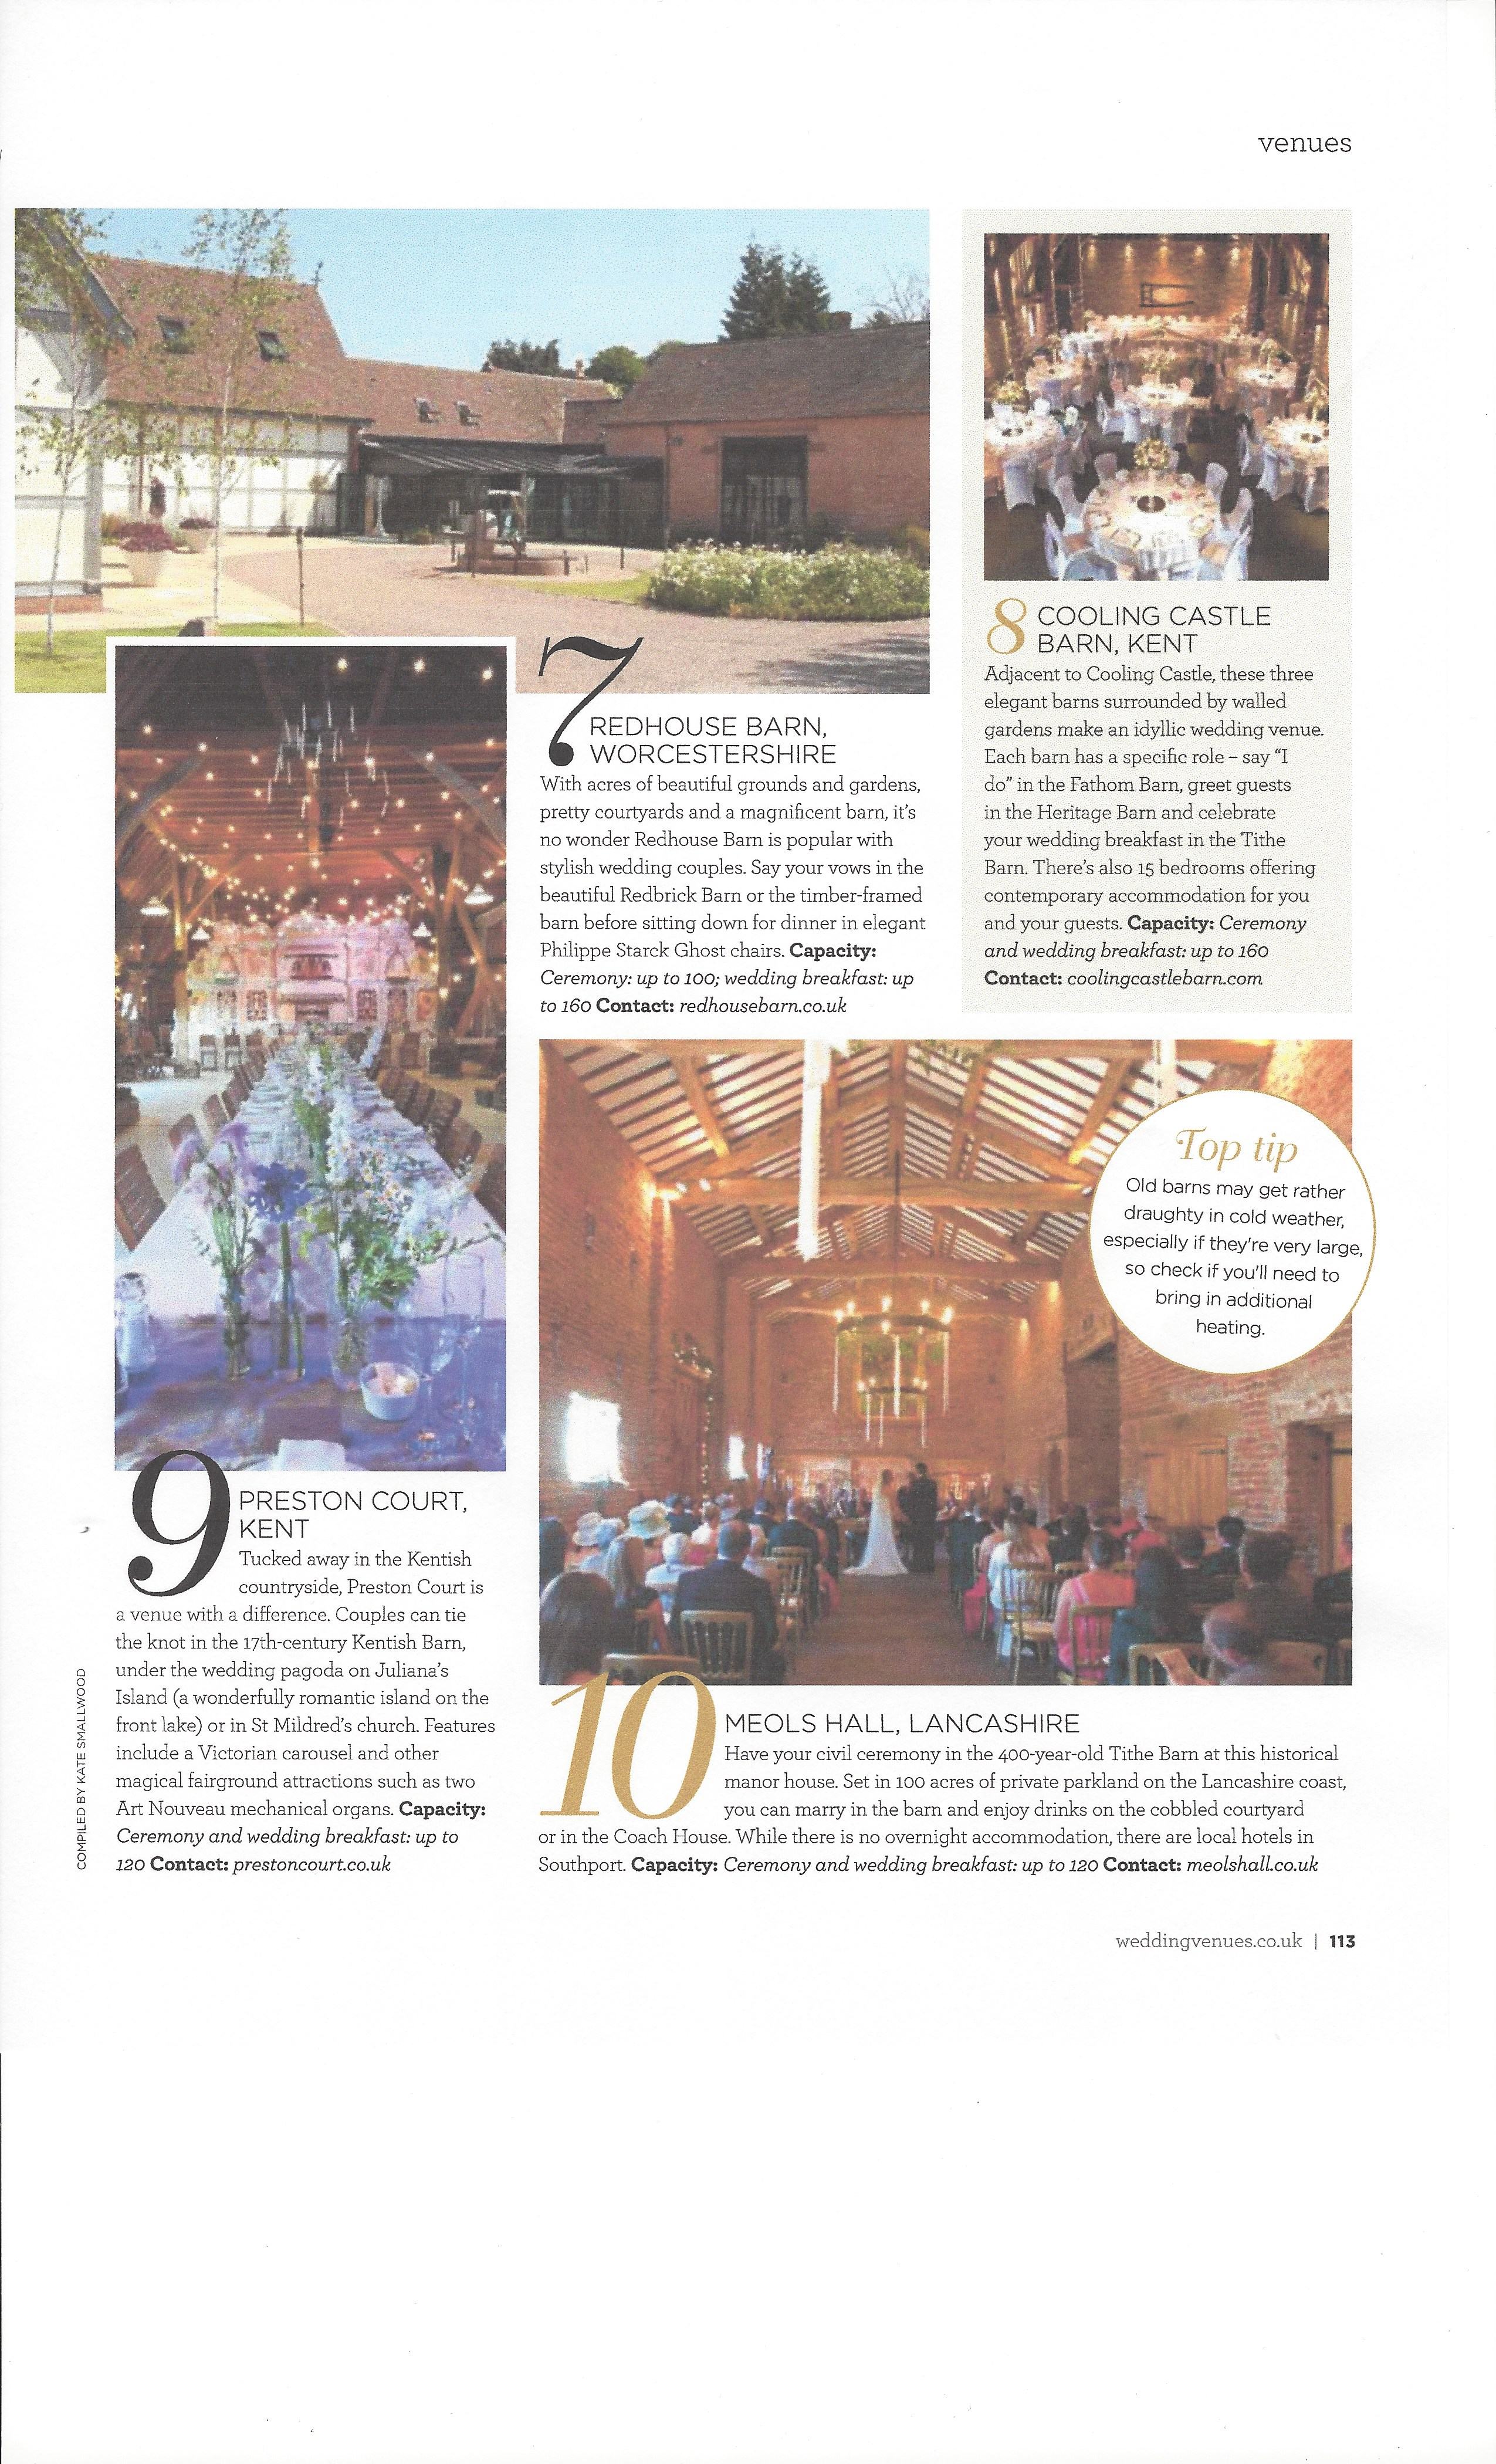 Wedding Venues and Services Magazine 10 Beautiful Barns